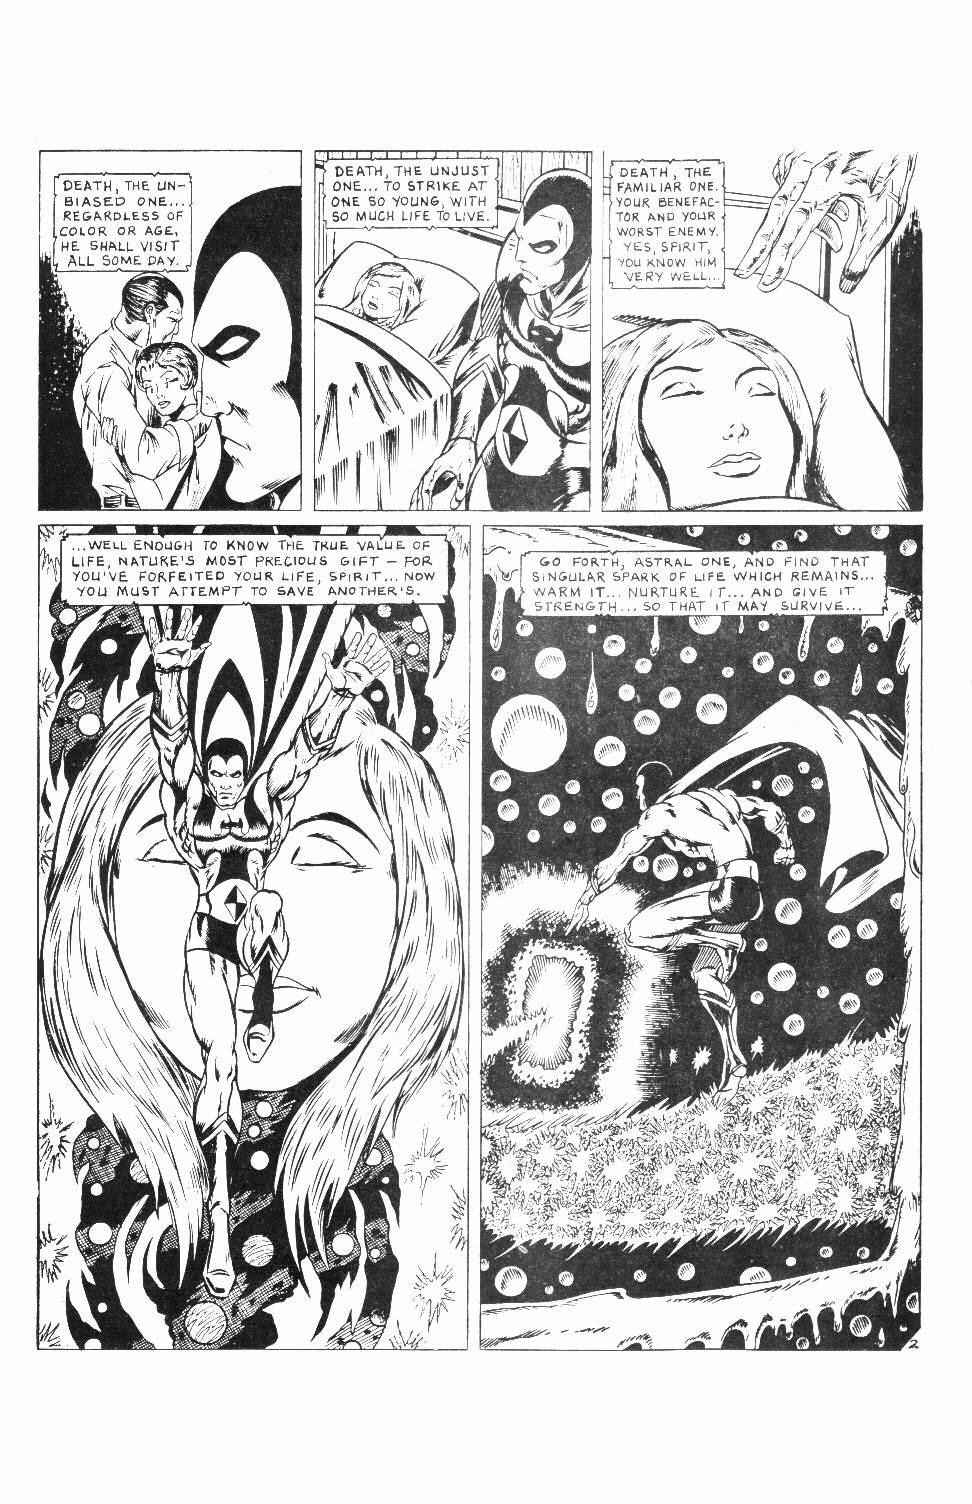 Read online Dr. Weird Special comic -  Issue # Full - 4